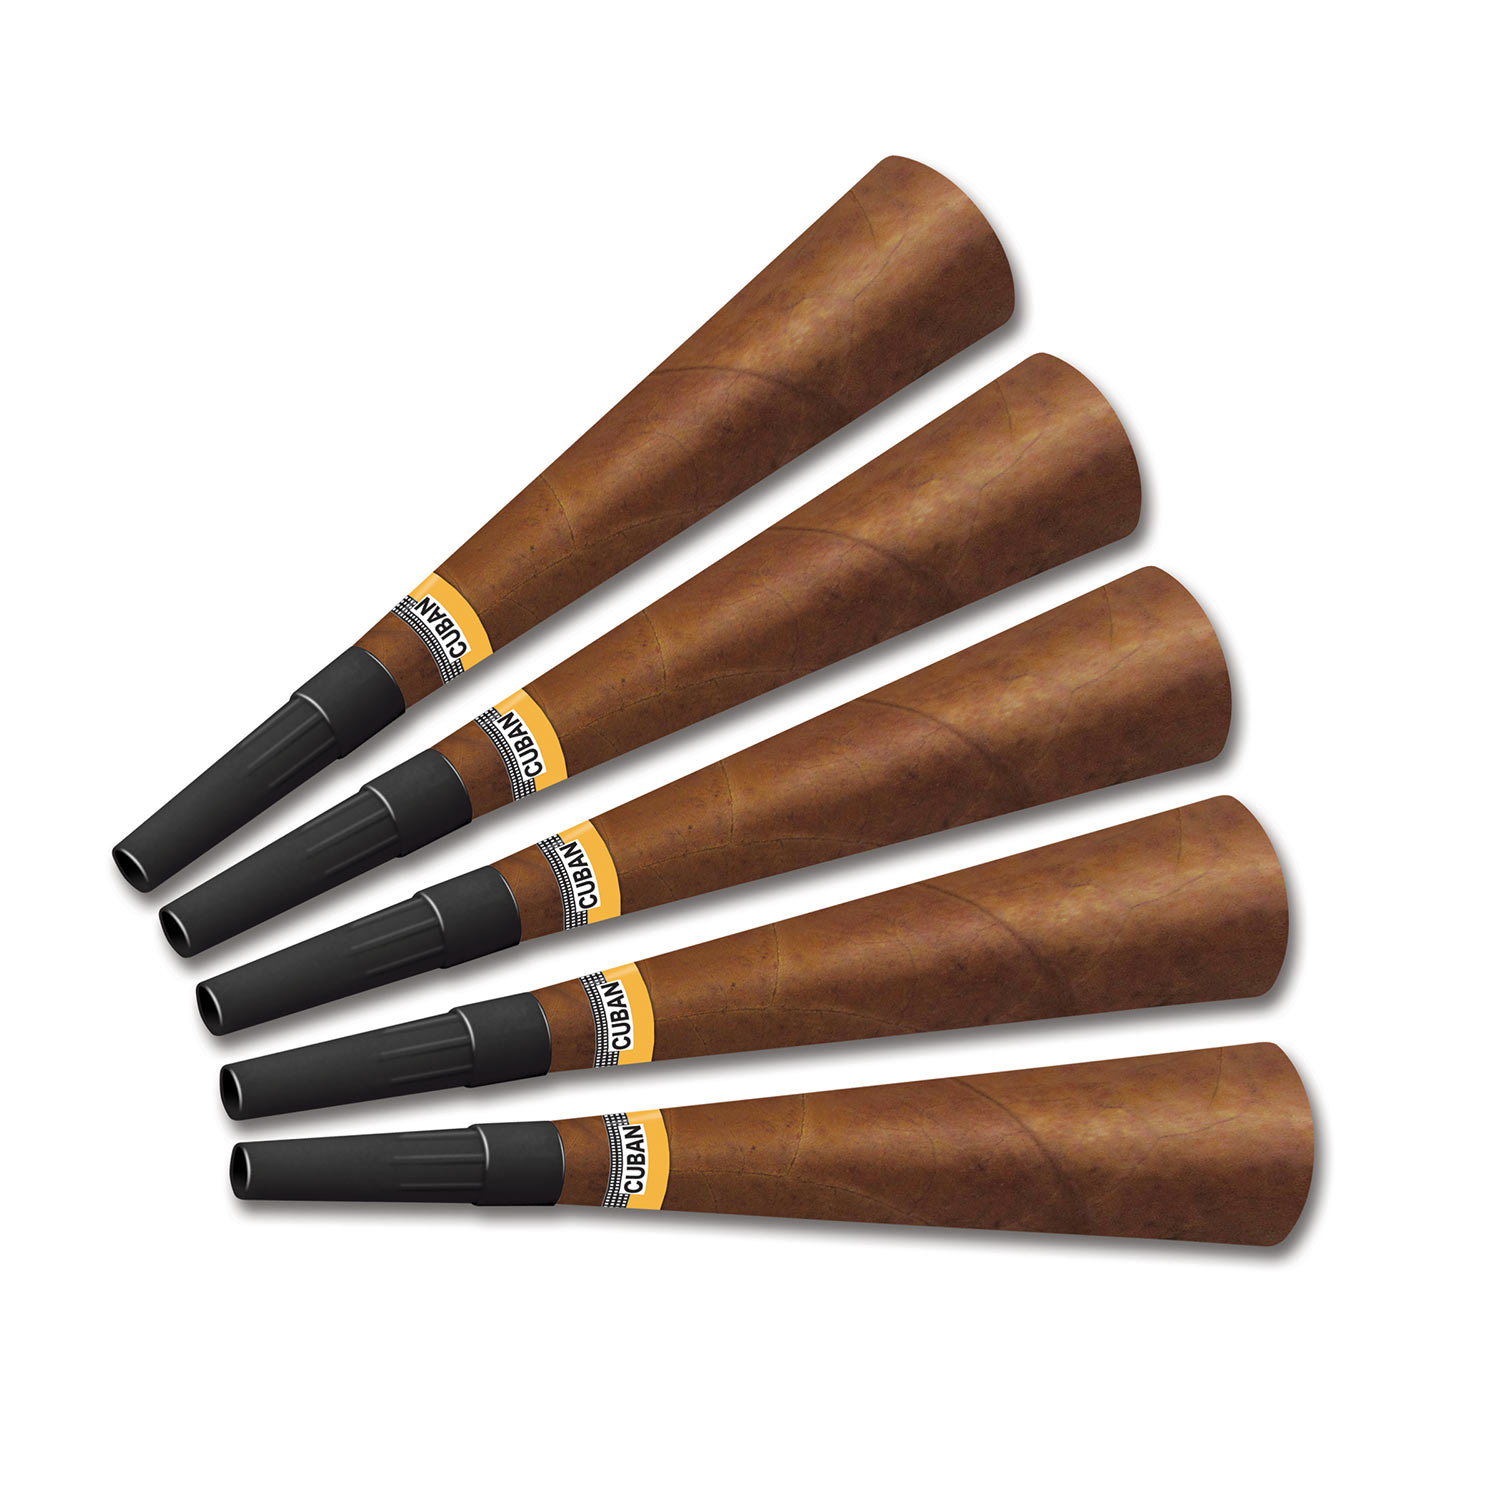 Cigar Horns (Pack of 100) Cigar Horns, party favor, new years eve, horn, wester, 20, havana, gangster, wholesale, inexpensive, bulk